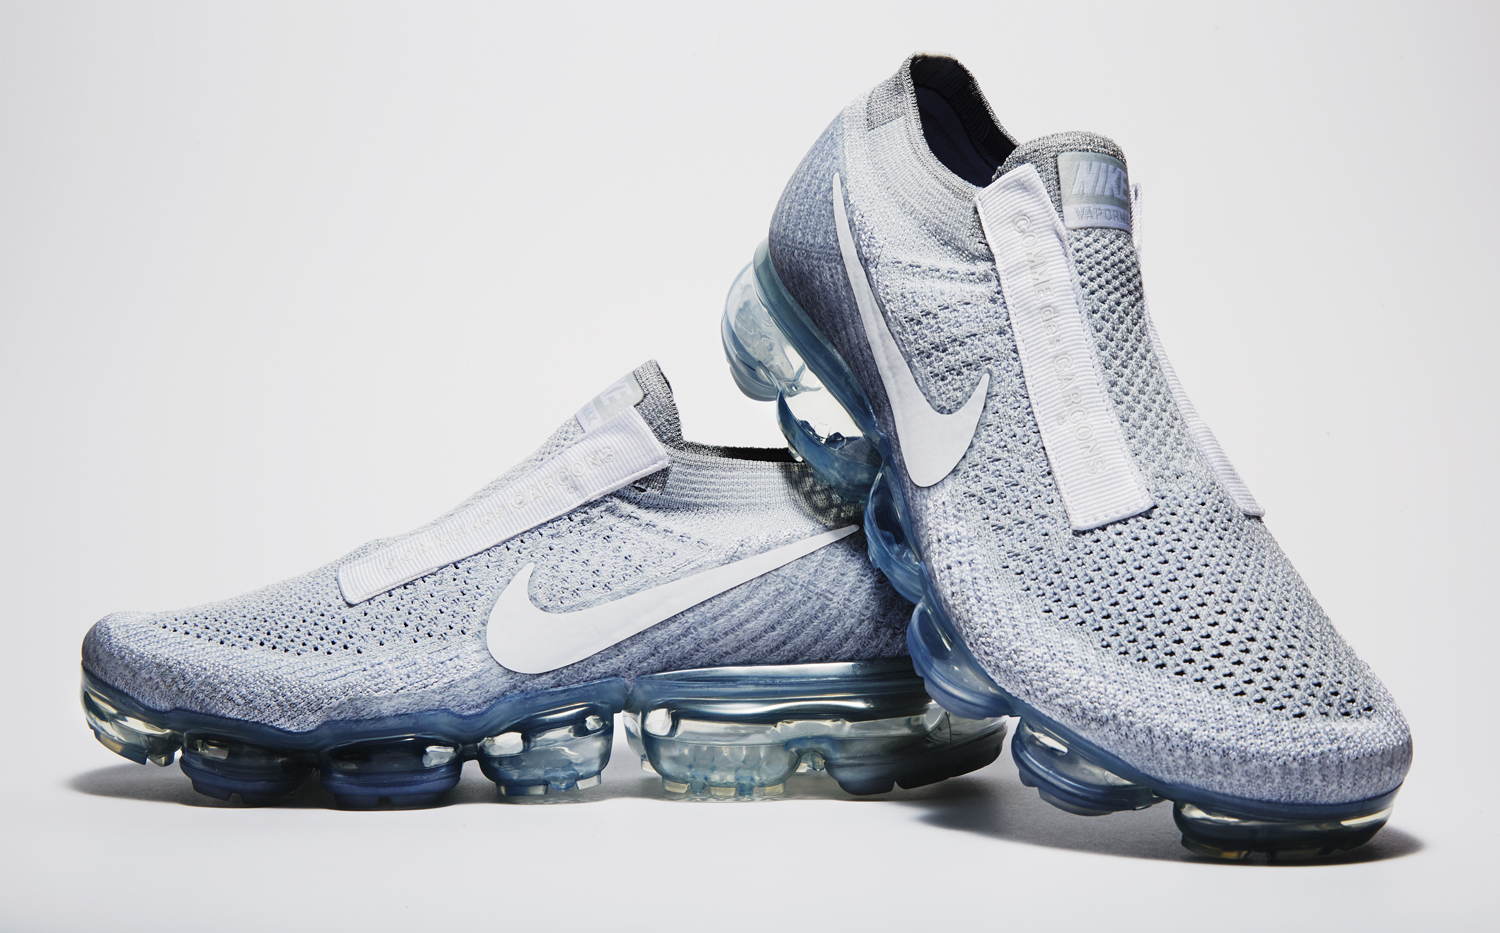 huge discount 6166e cb0b9 Image via Nike White Nike Air VaporMax Comme des Garcons Pair